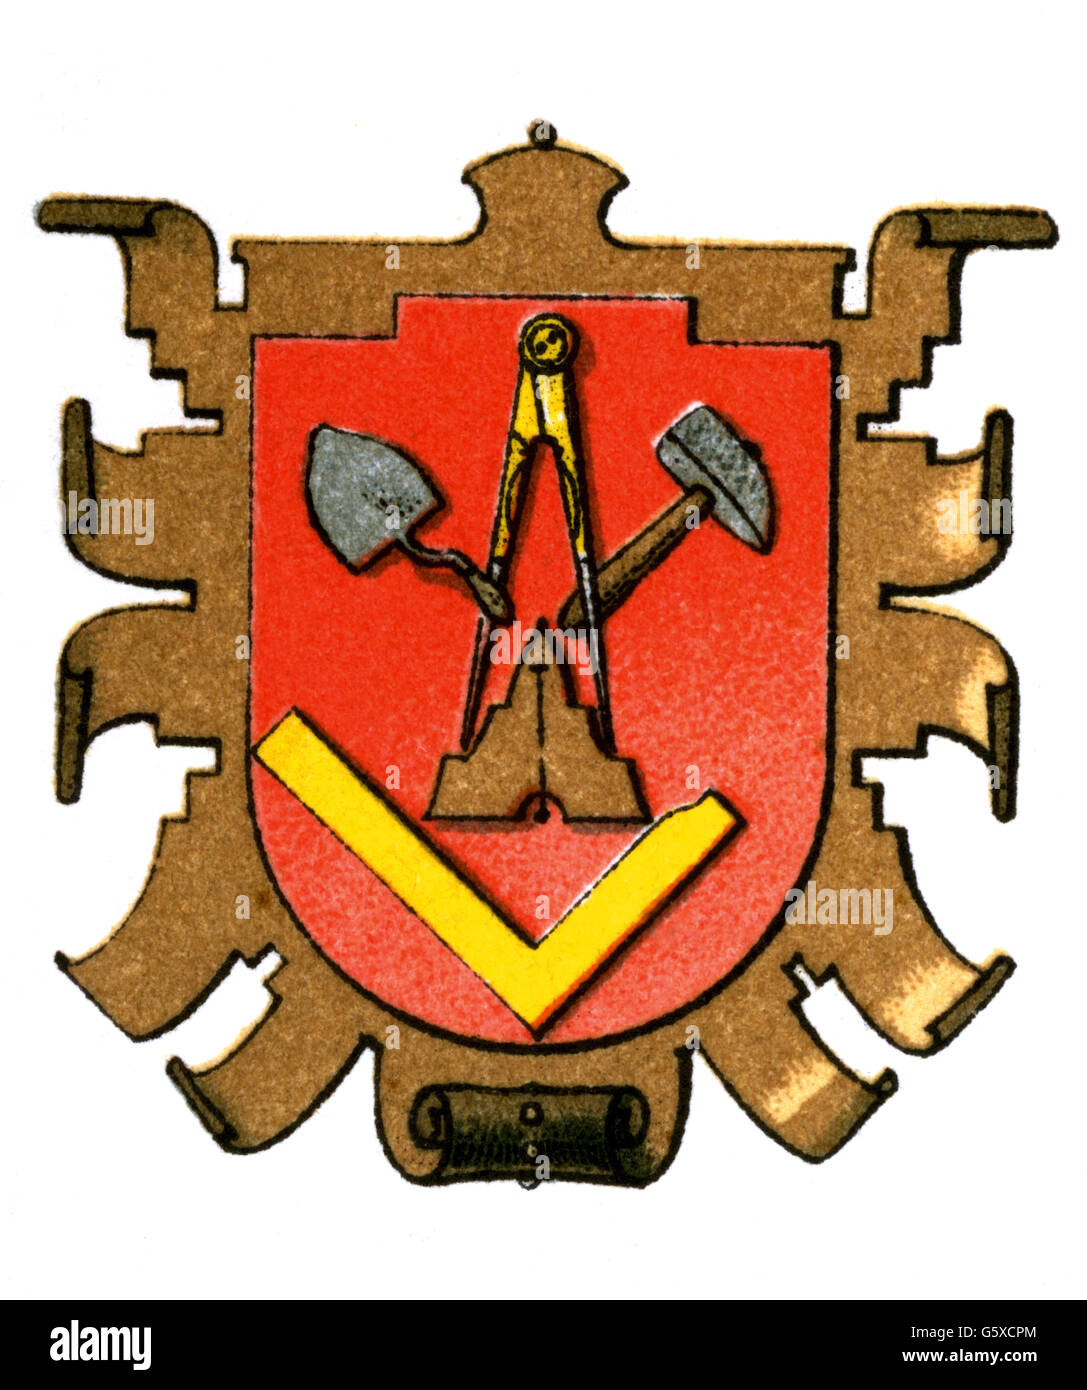 heraldry-coat-of-arms-guild-coat-of-arms